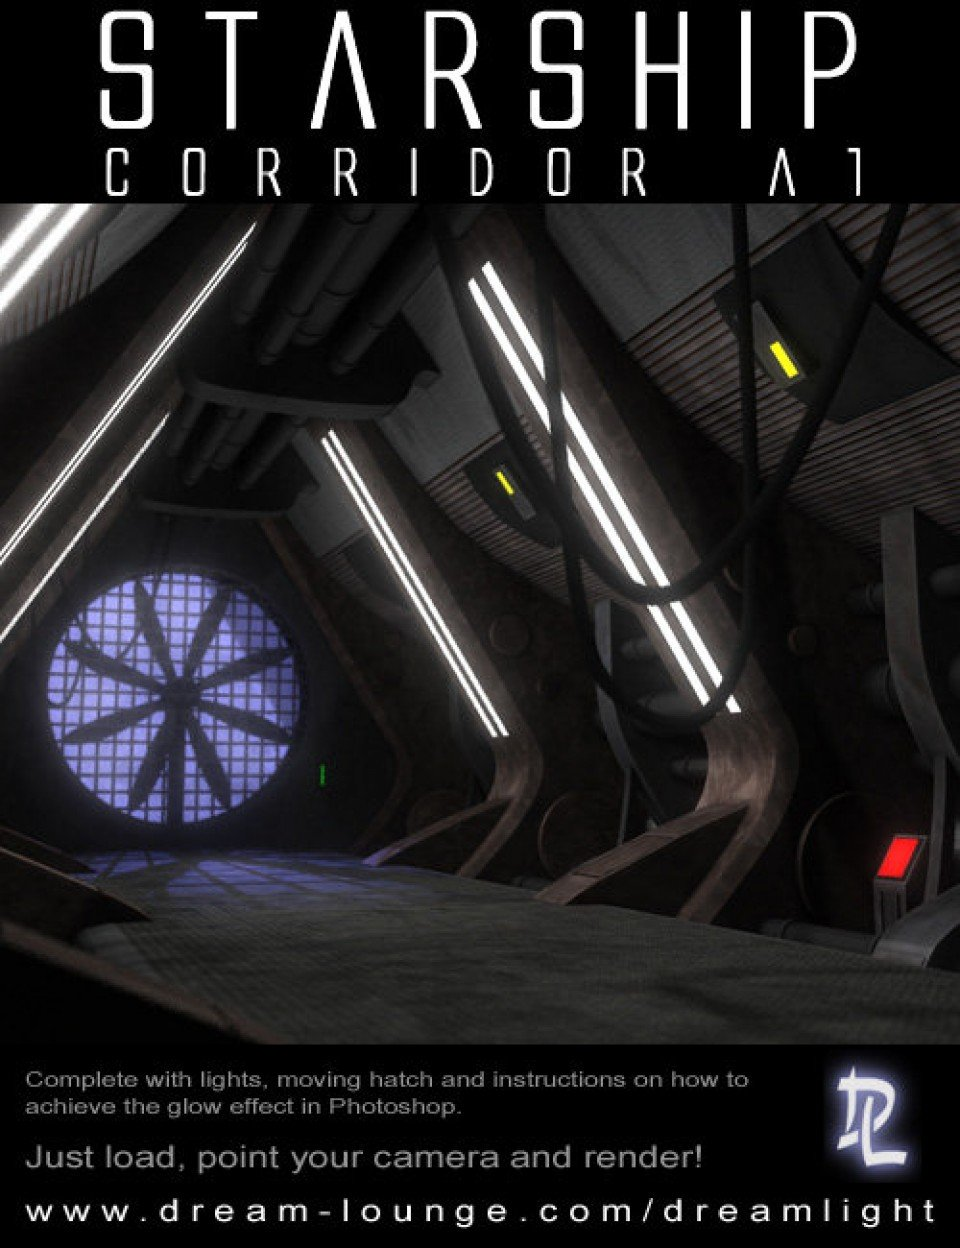 Starship Corridor A1 for DS_DAZ3D下载站